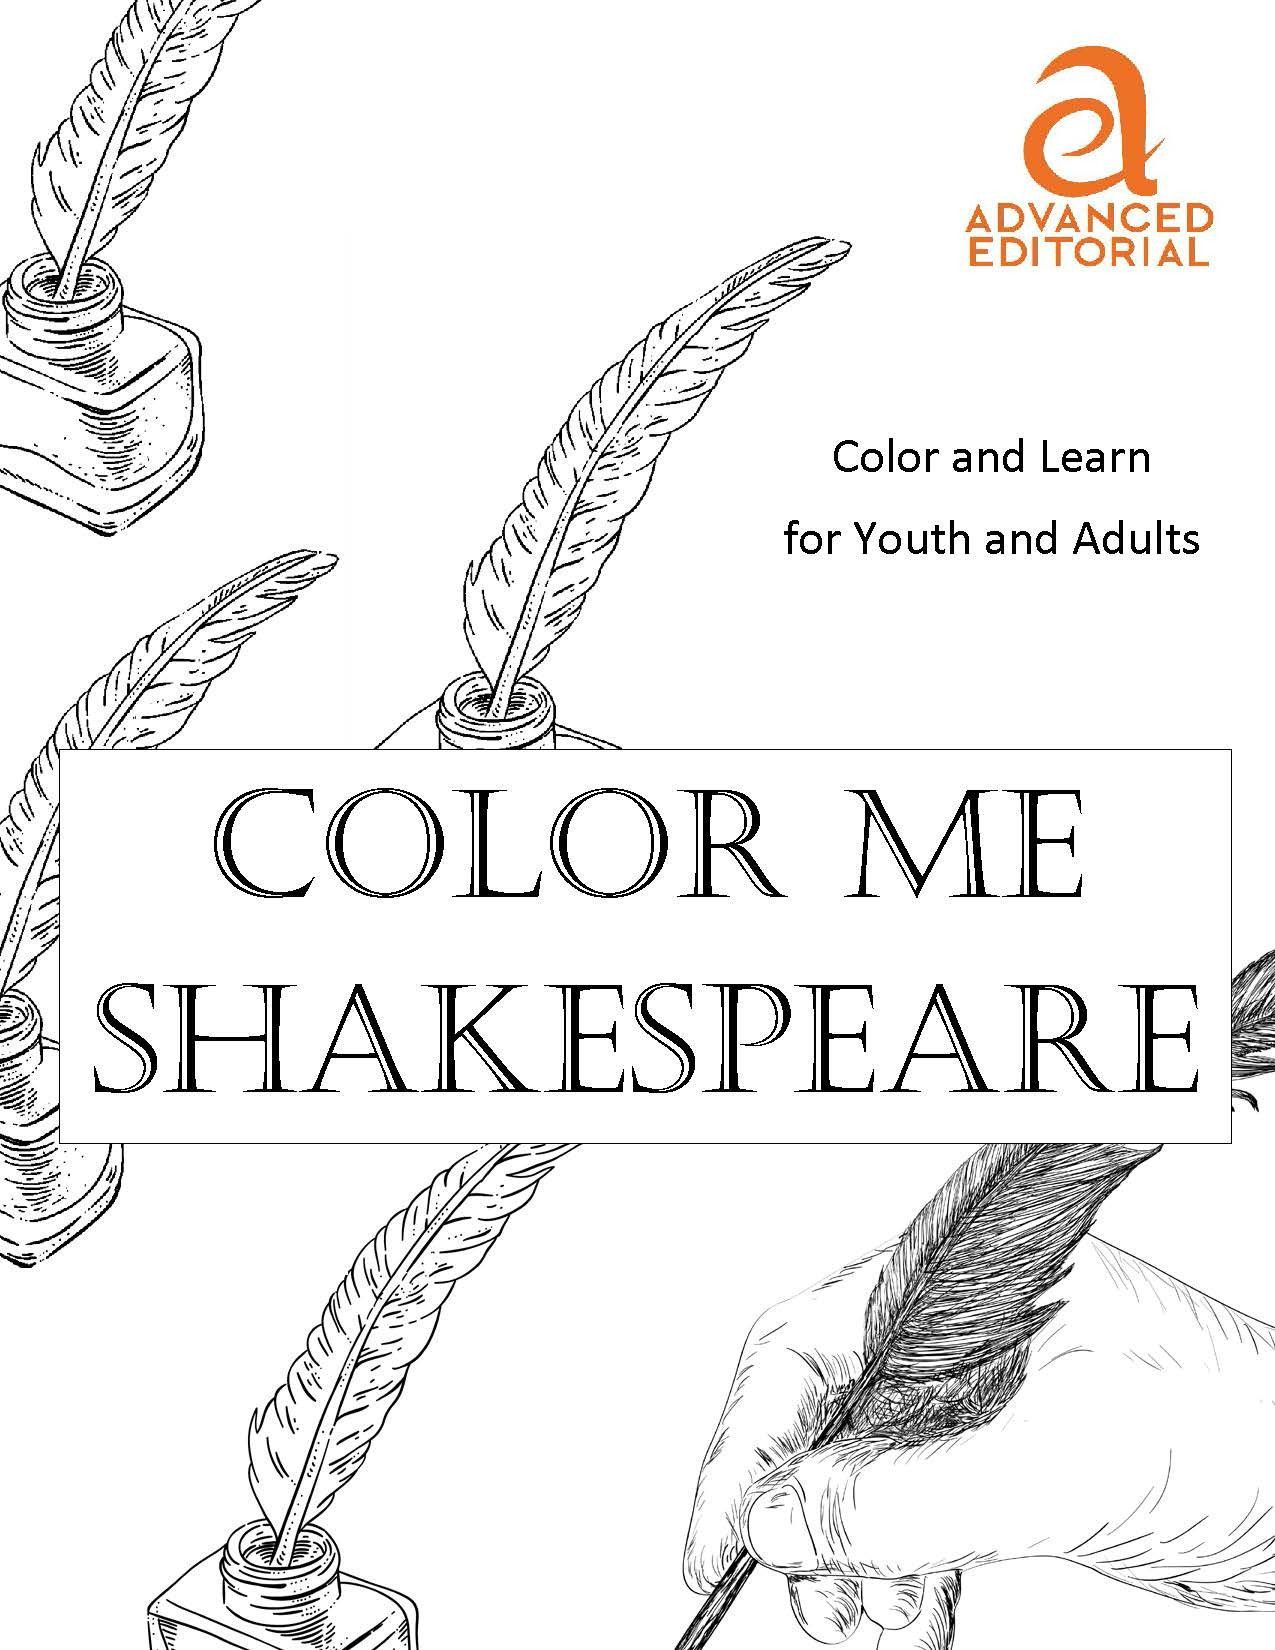 Coloring book for notability - Color Me Shakespeare Ae Book Club Love Adult Coloring Books